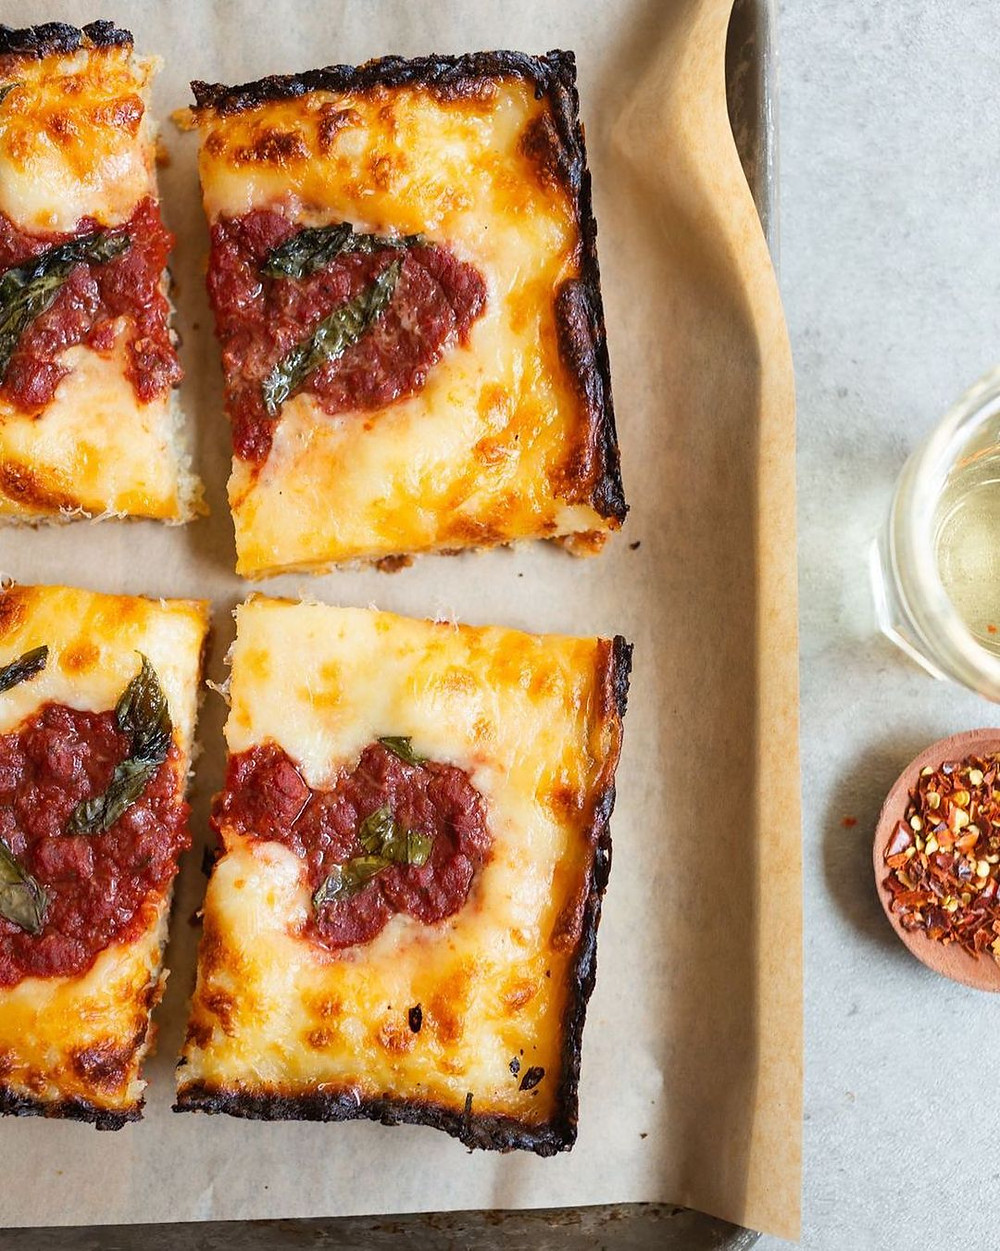 Detroit-style pizza on a tray with red pepper flakes in a small dish next to it